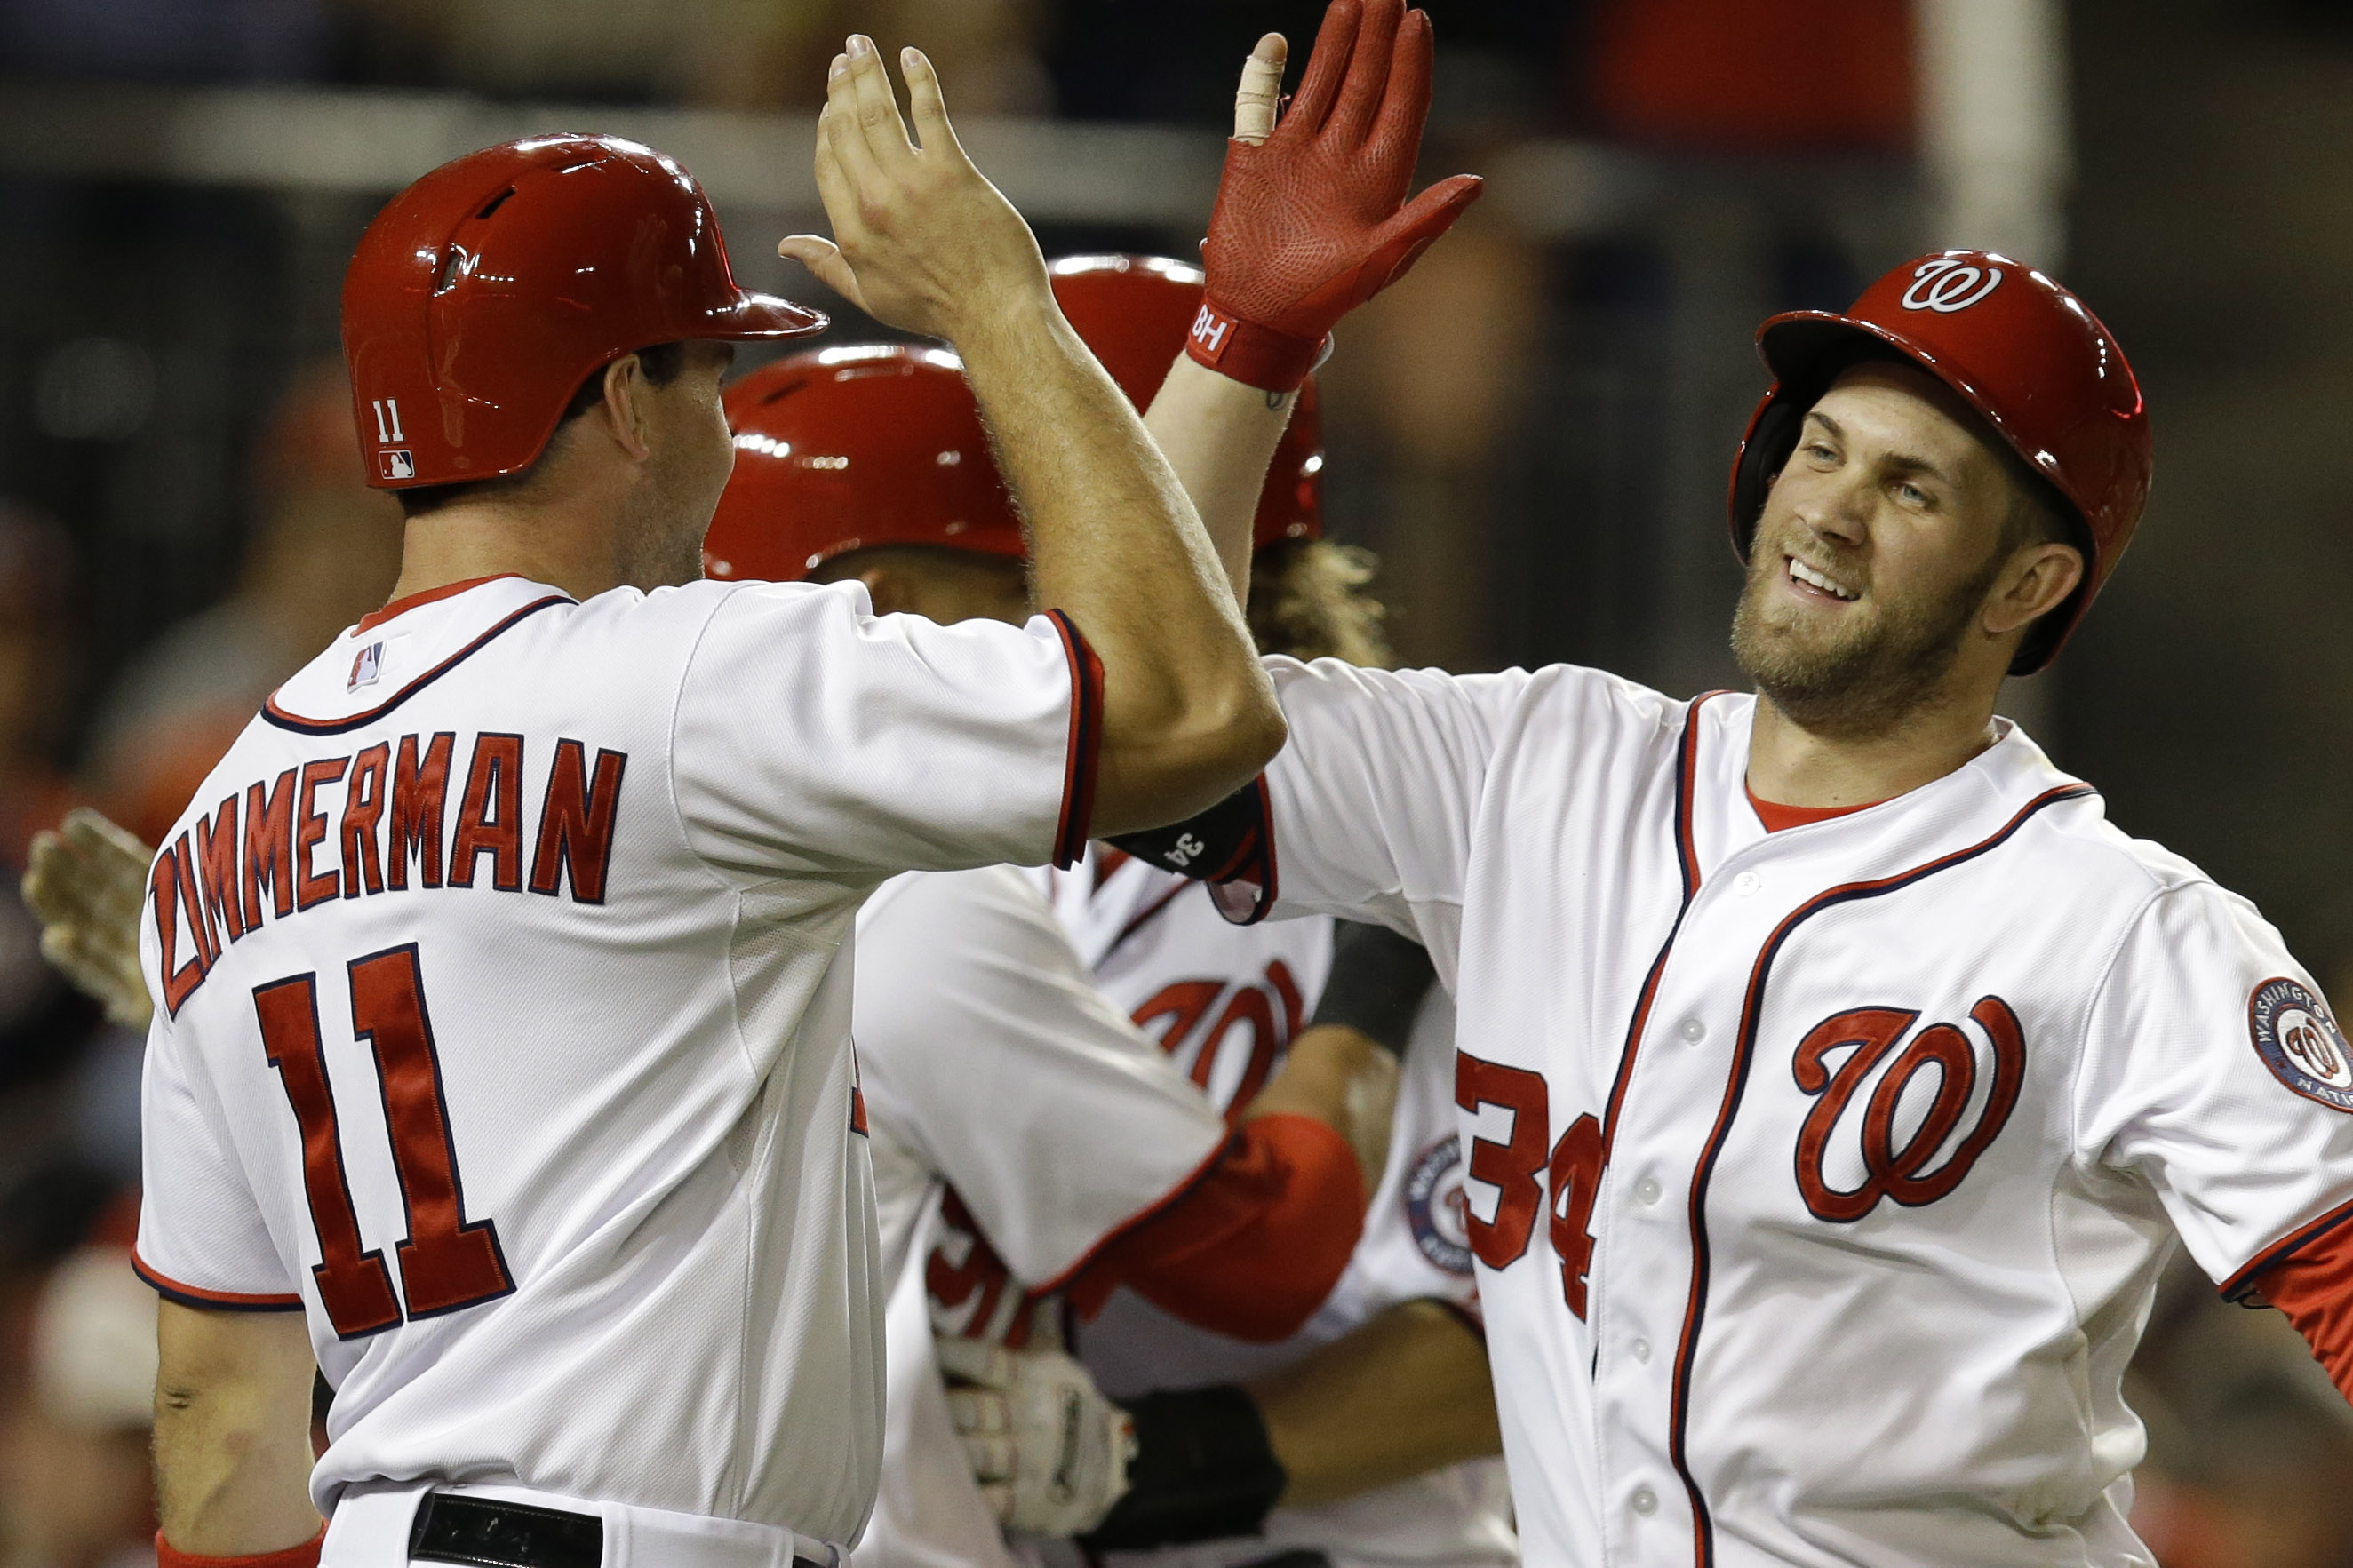 Washington Nationals' Bryce Harper (34) high-fives teammate Ryan Zimmerman (11) after scoring with a three-run home run against the Miami Marlins during the first inning of a baseball game at Nationals Park in Washington, Thursday, Sept. 19, 2013. Nationals' Ryan Zimmerman and Jayson Werth also scored on the play